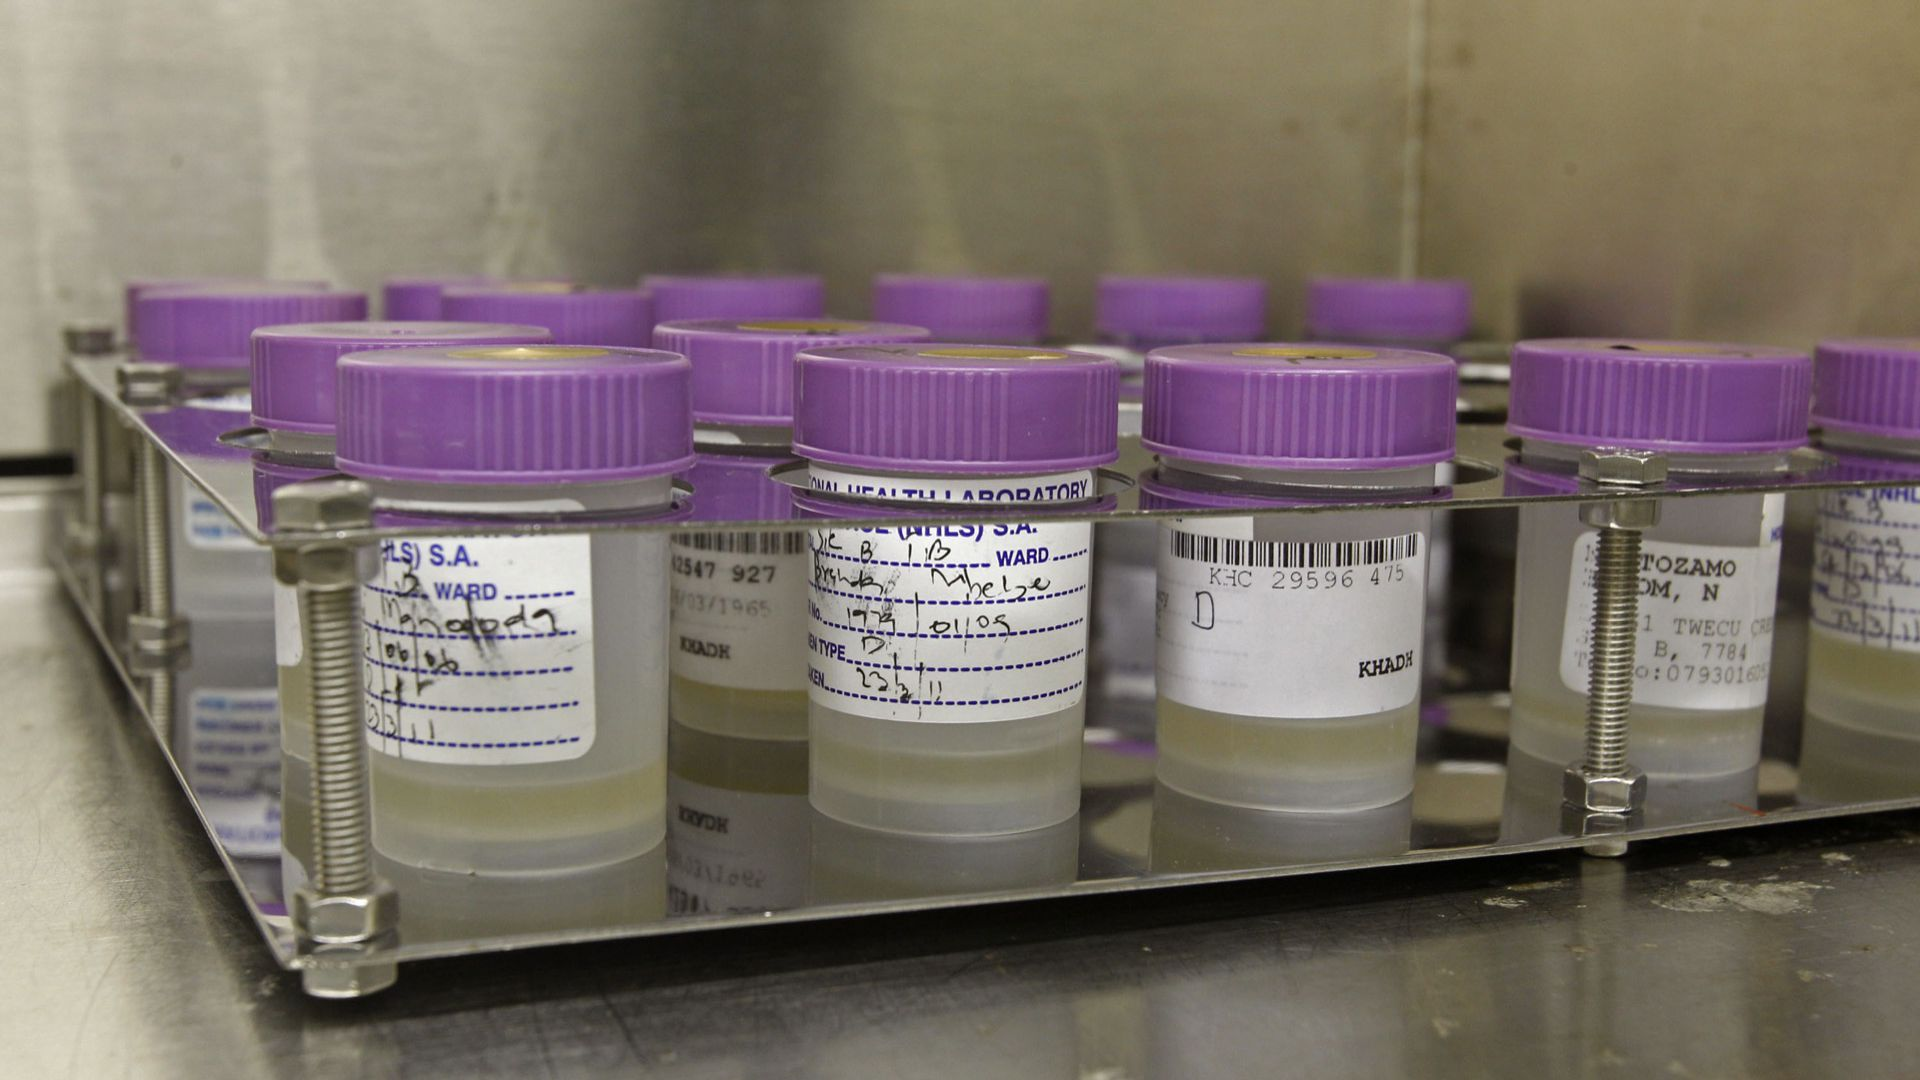 Tuberculosis samples at a South African clinic